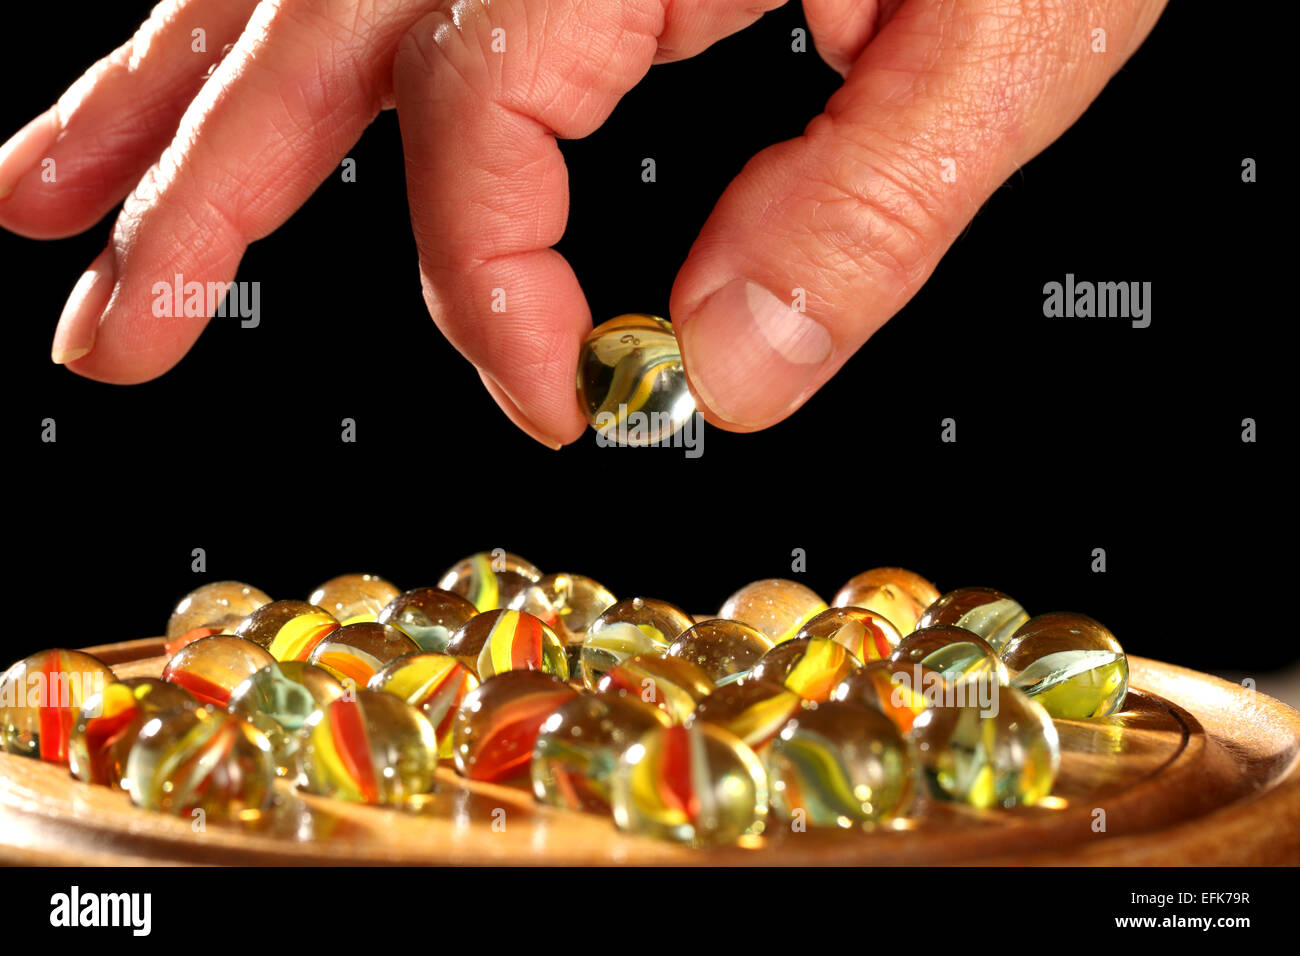 A man holds a marble in his hand while playing a game known as Solitaire in the United Kingdom. - Stock Image